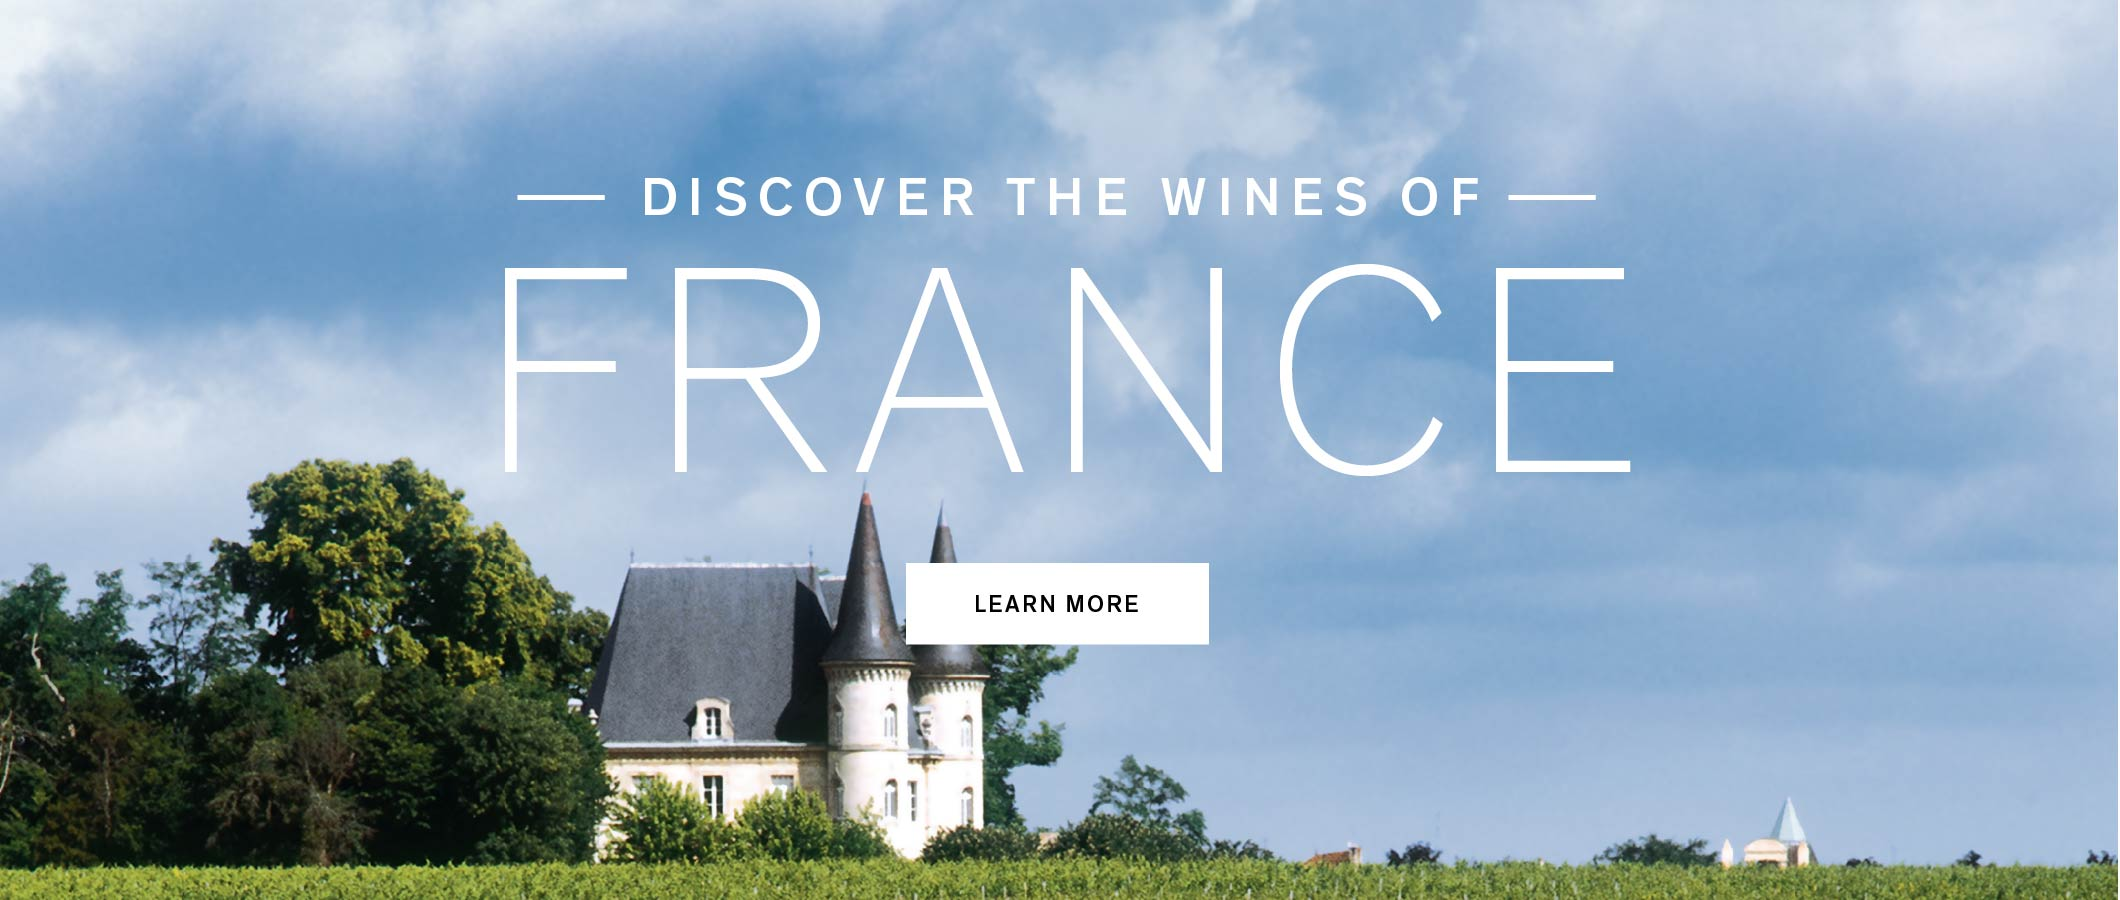 Discover the Wines of France